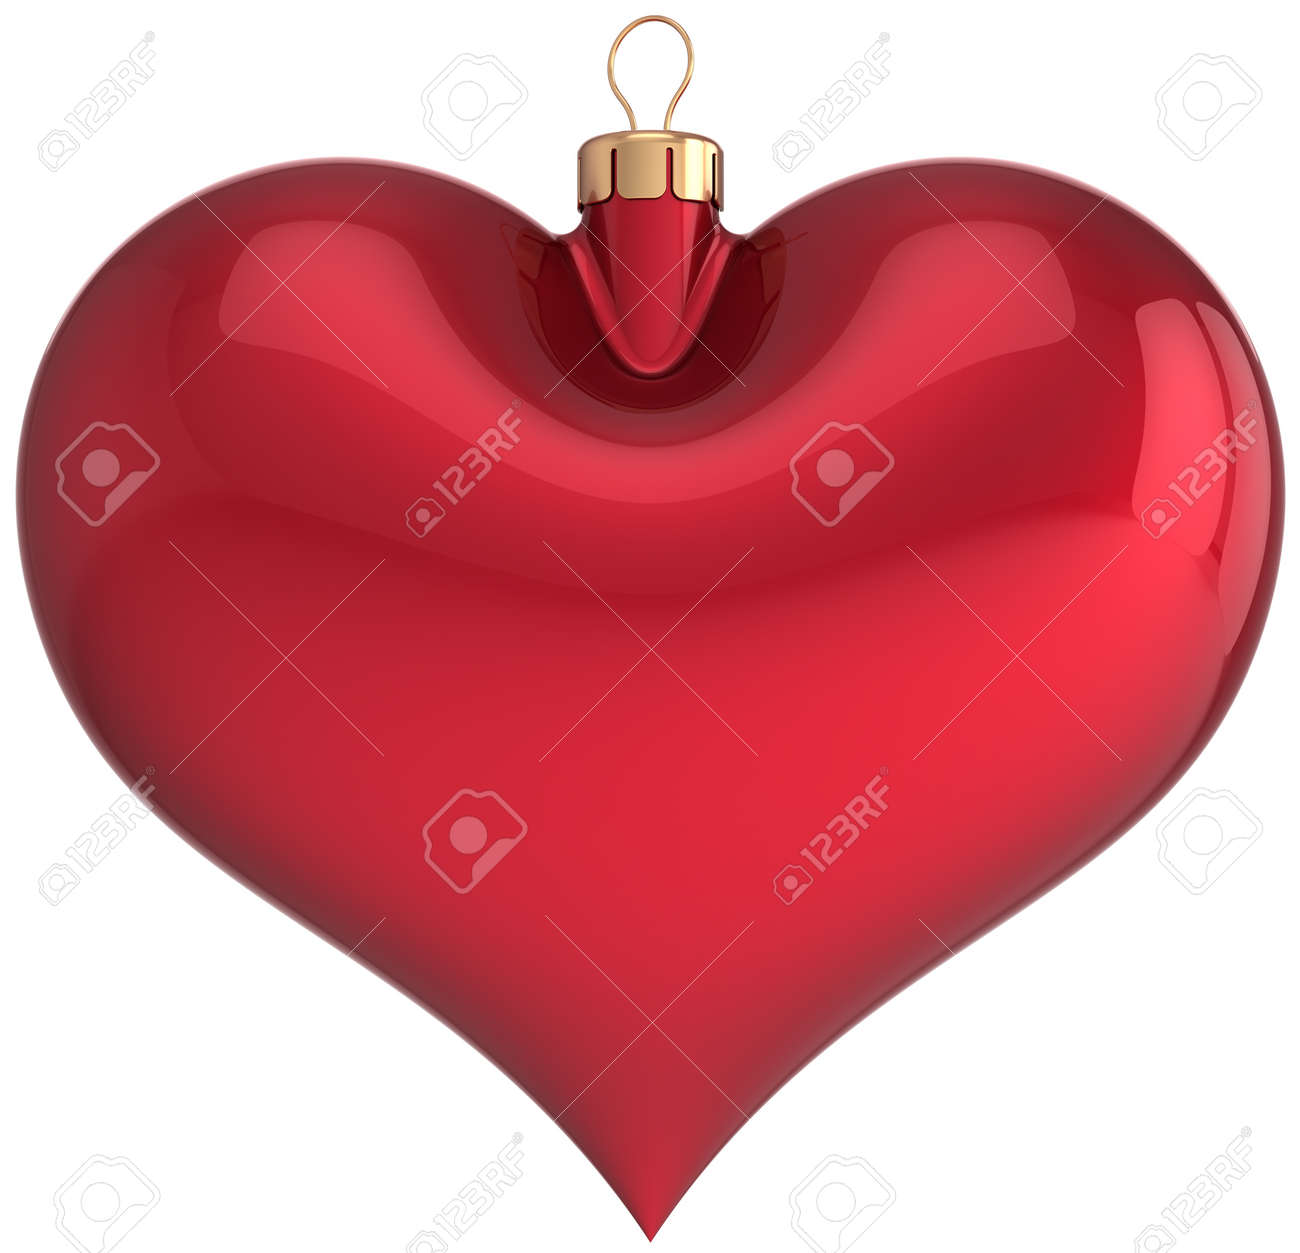 Red Christmas Ball Heart Shaped Blank Decoration Happy New Year